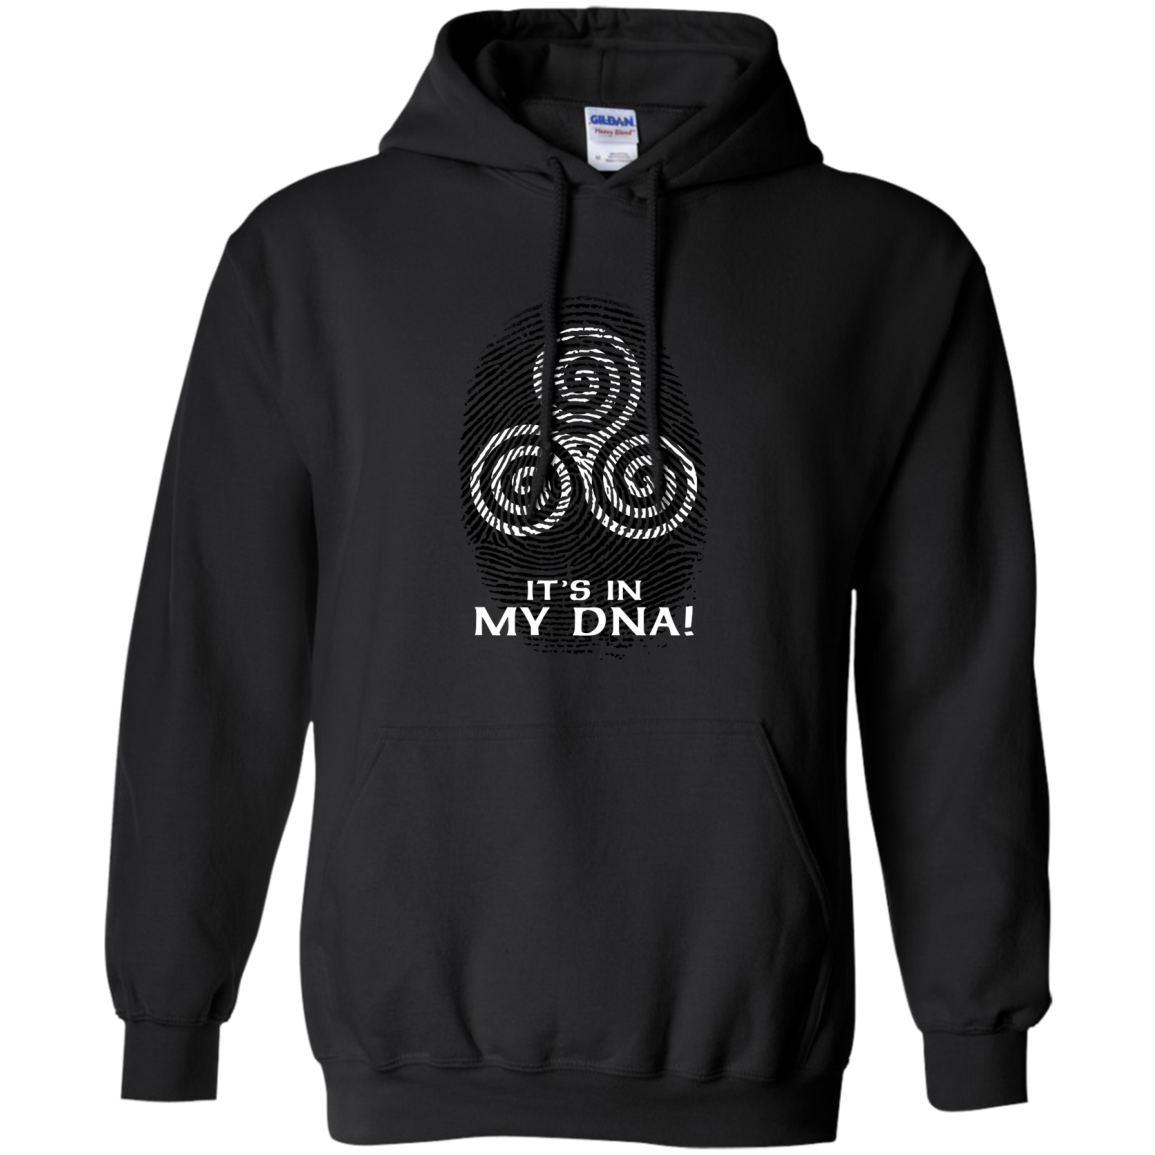 Irish Celtic Spiral DNA St Patricks Day Clothing St Patrick's Day Shirts Hoodies For Women And Men - Blue Fox